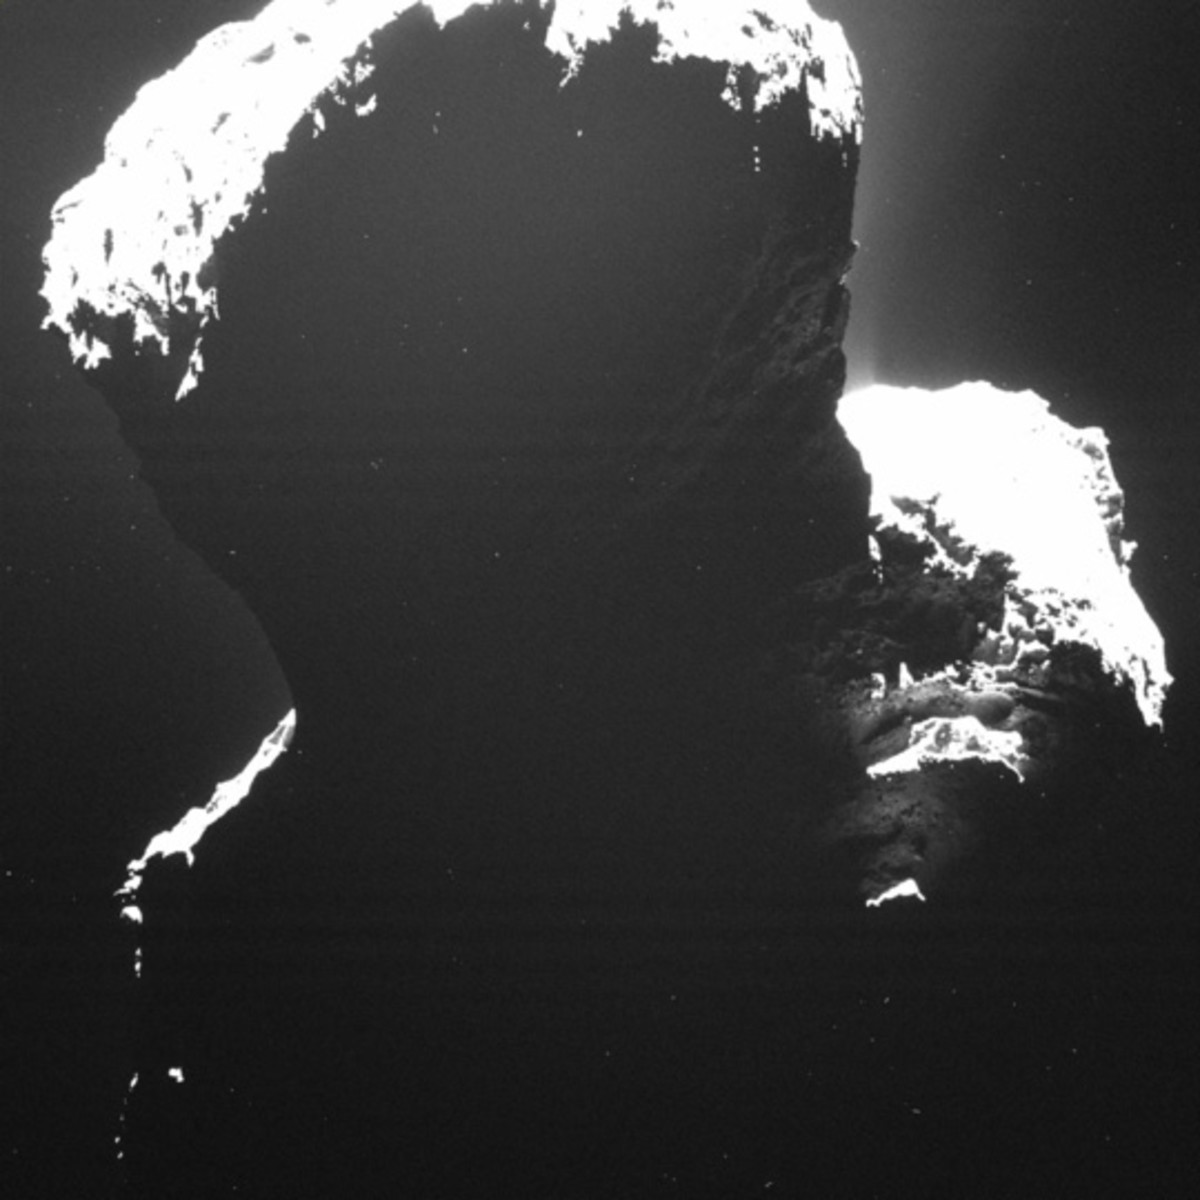 67P backlit, revealing its dark side.